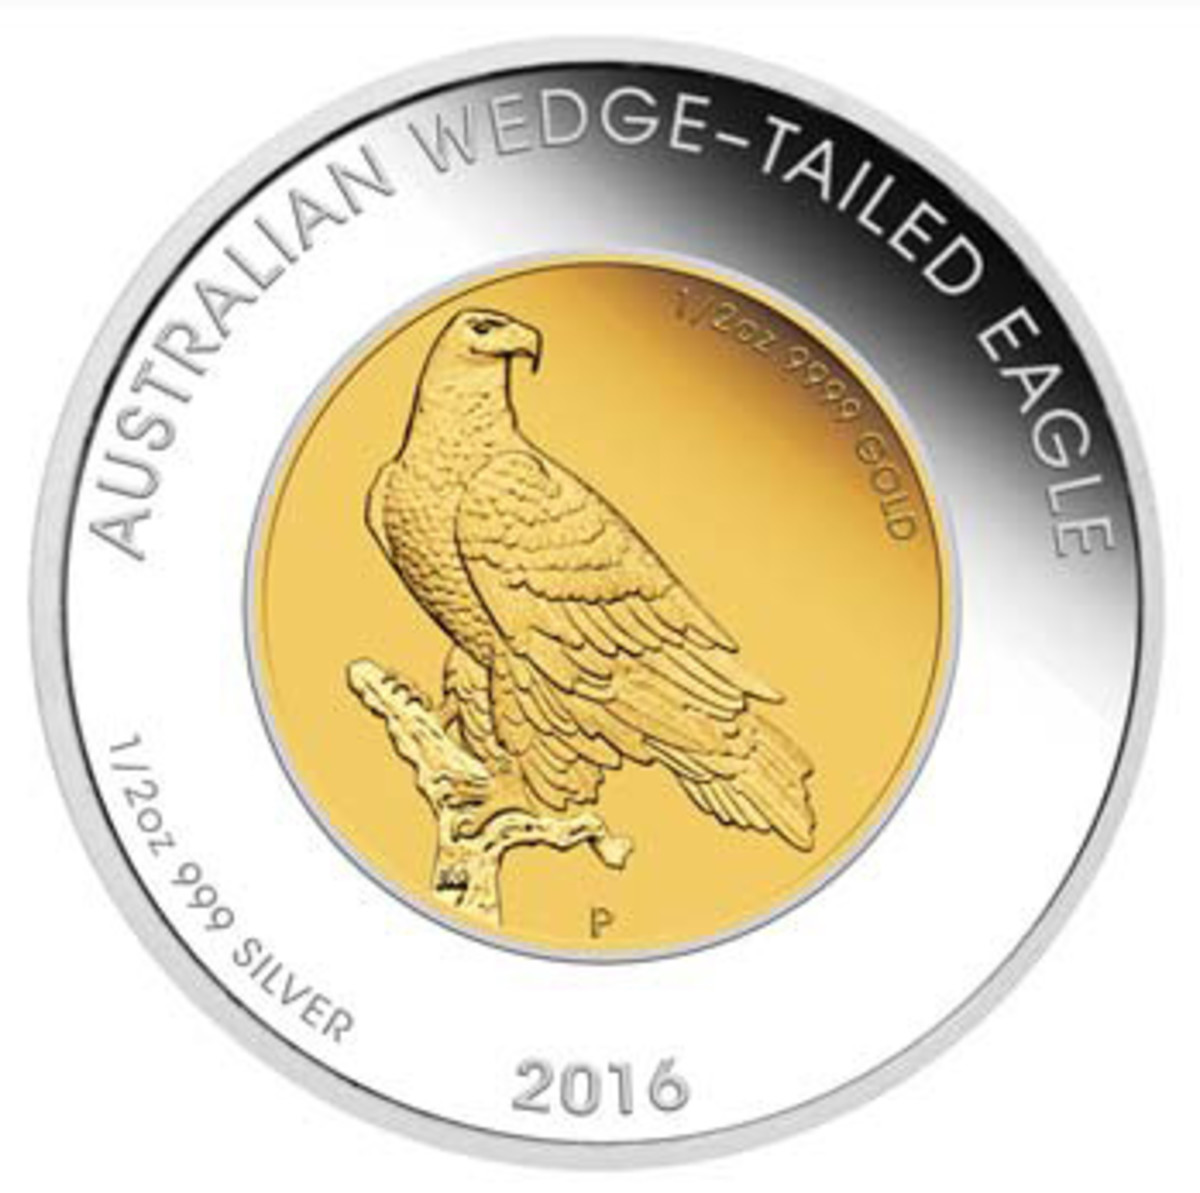 A perched eagle designed by John Mercanti appears on new Perth Mint coin issues.